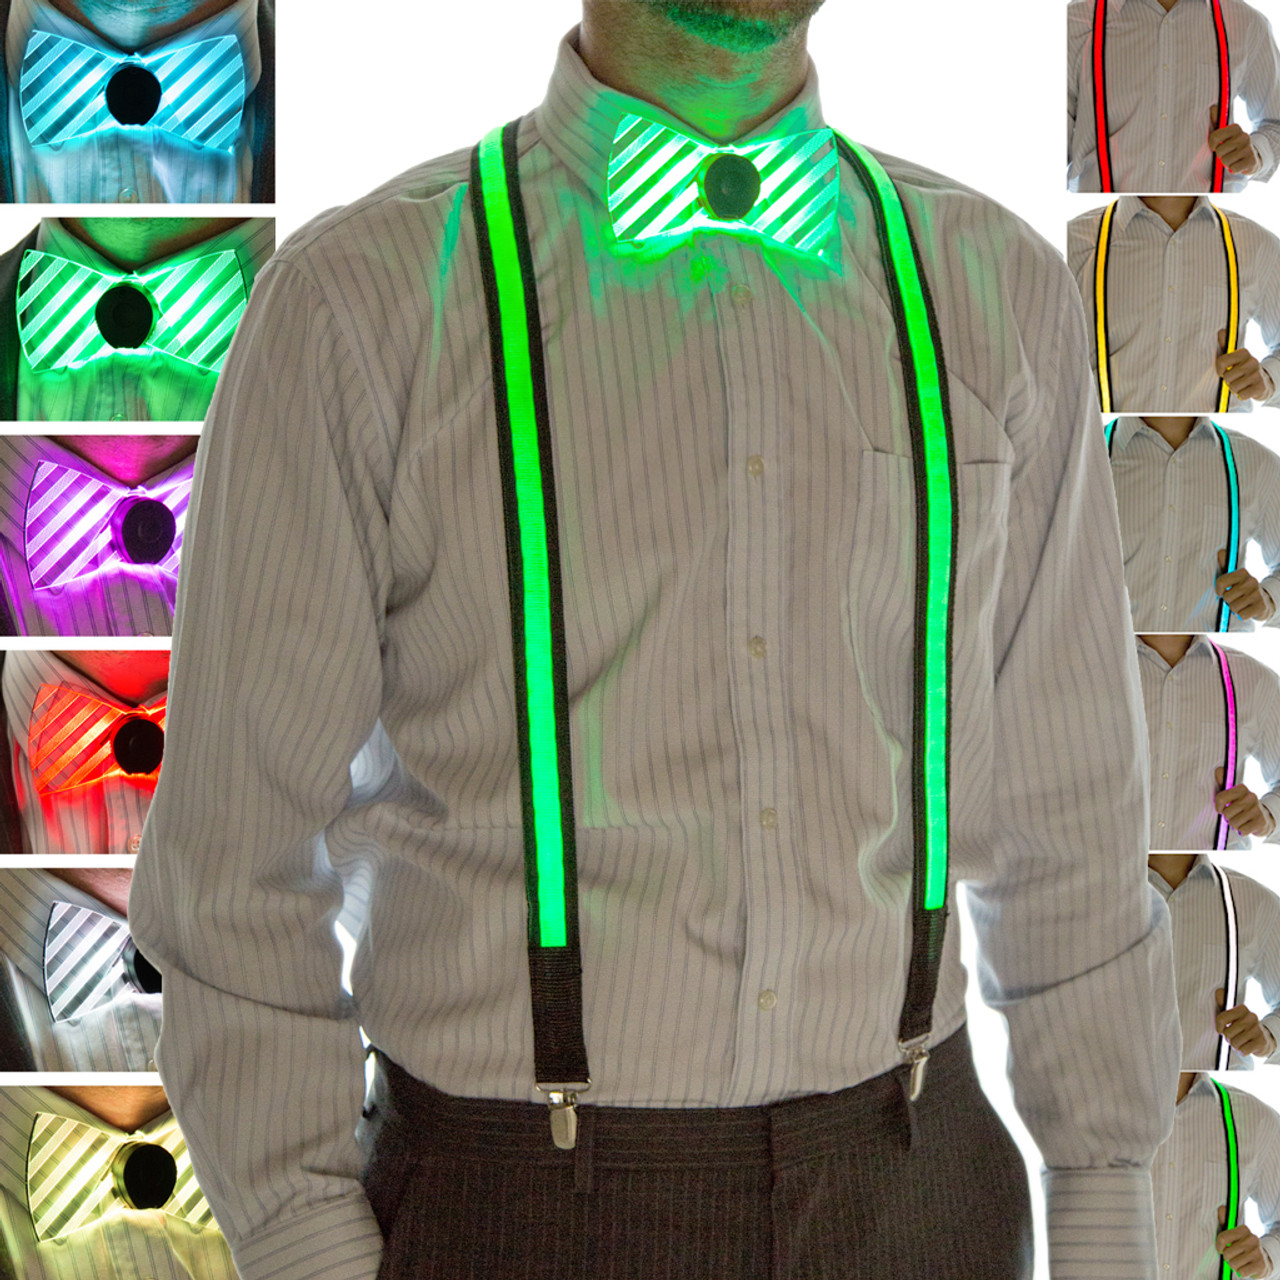 2cfa83a9e63ab7 Light Up Neon Bow Tie and Suspenders Set | SuspenderStore